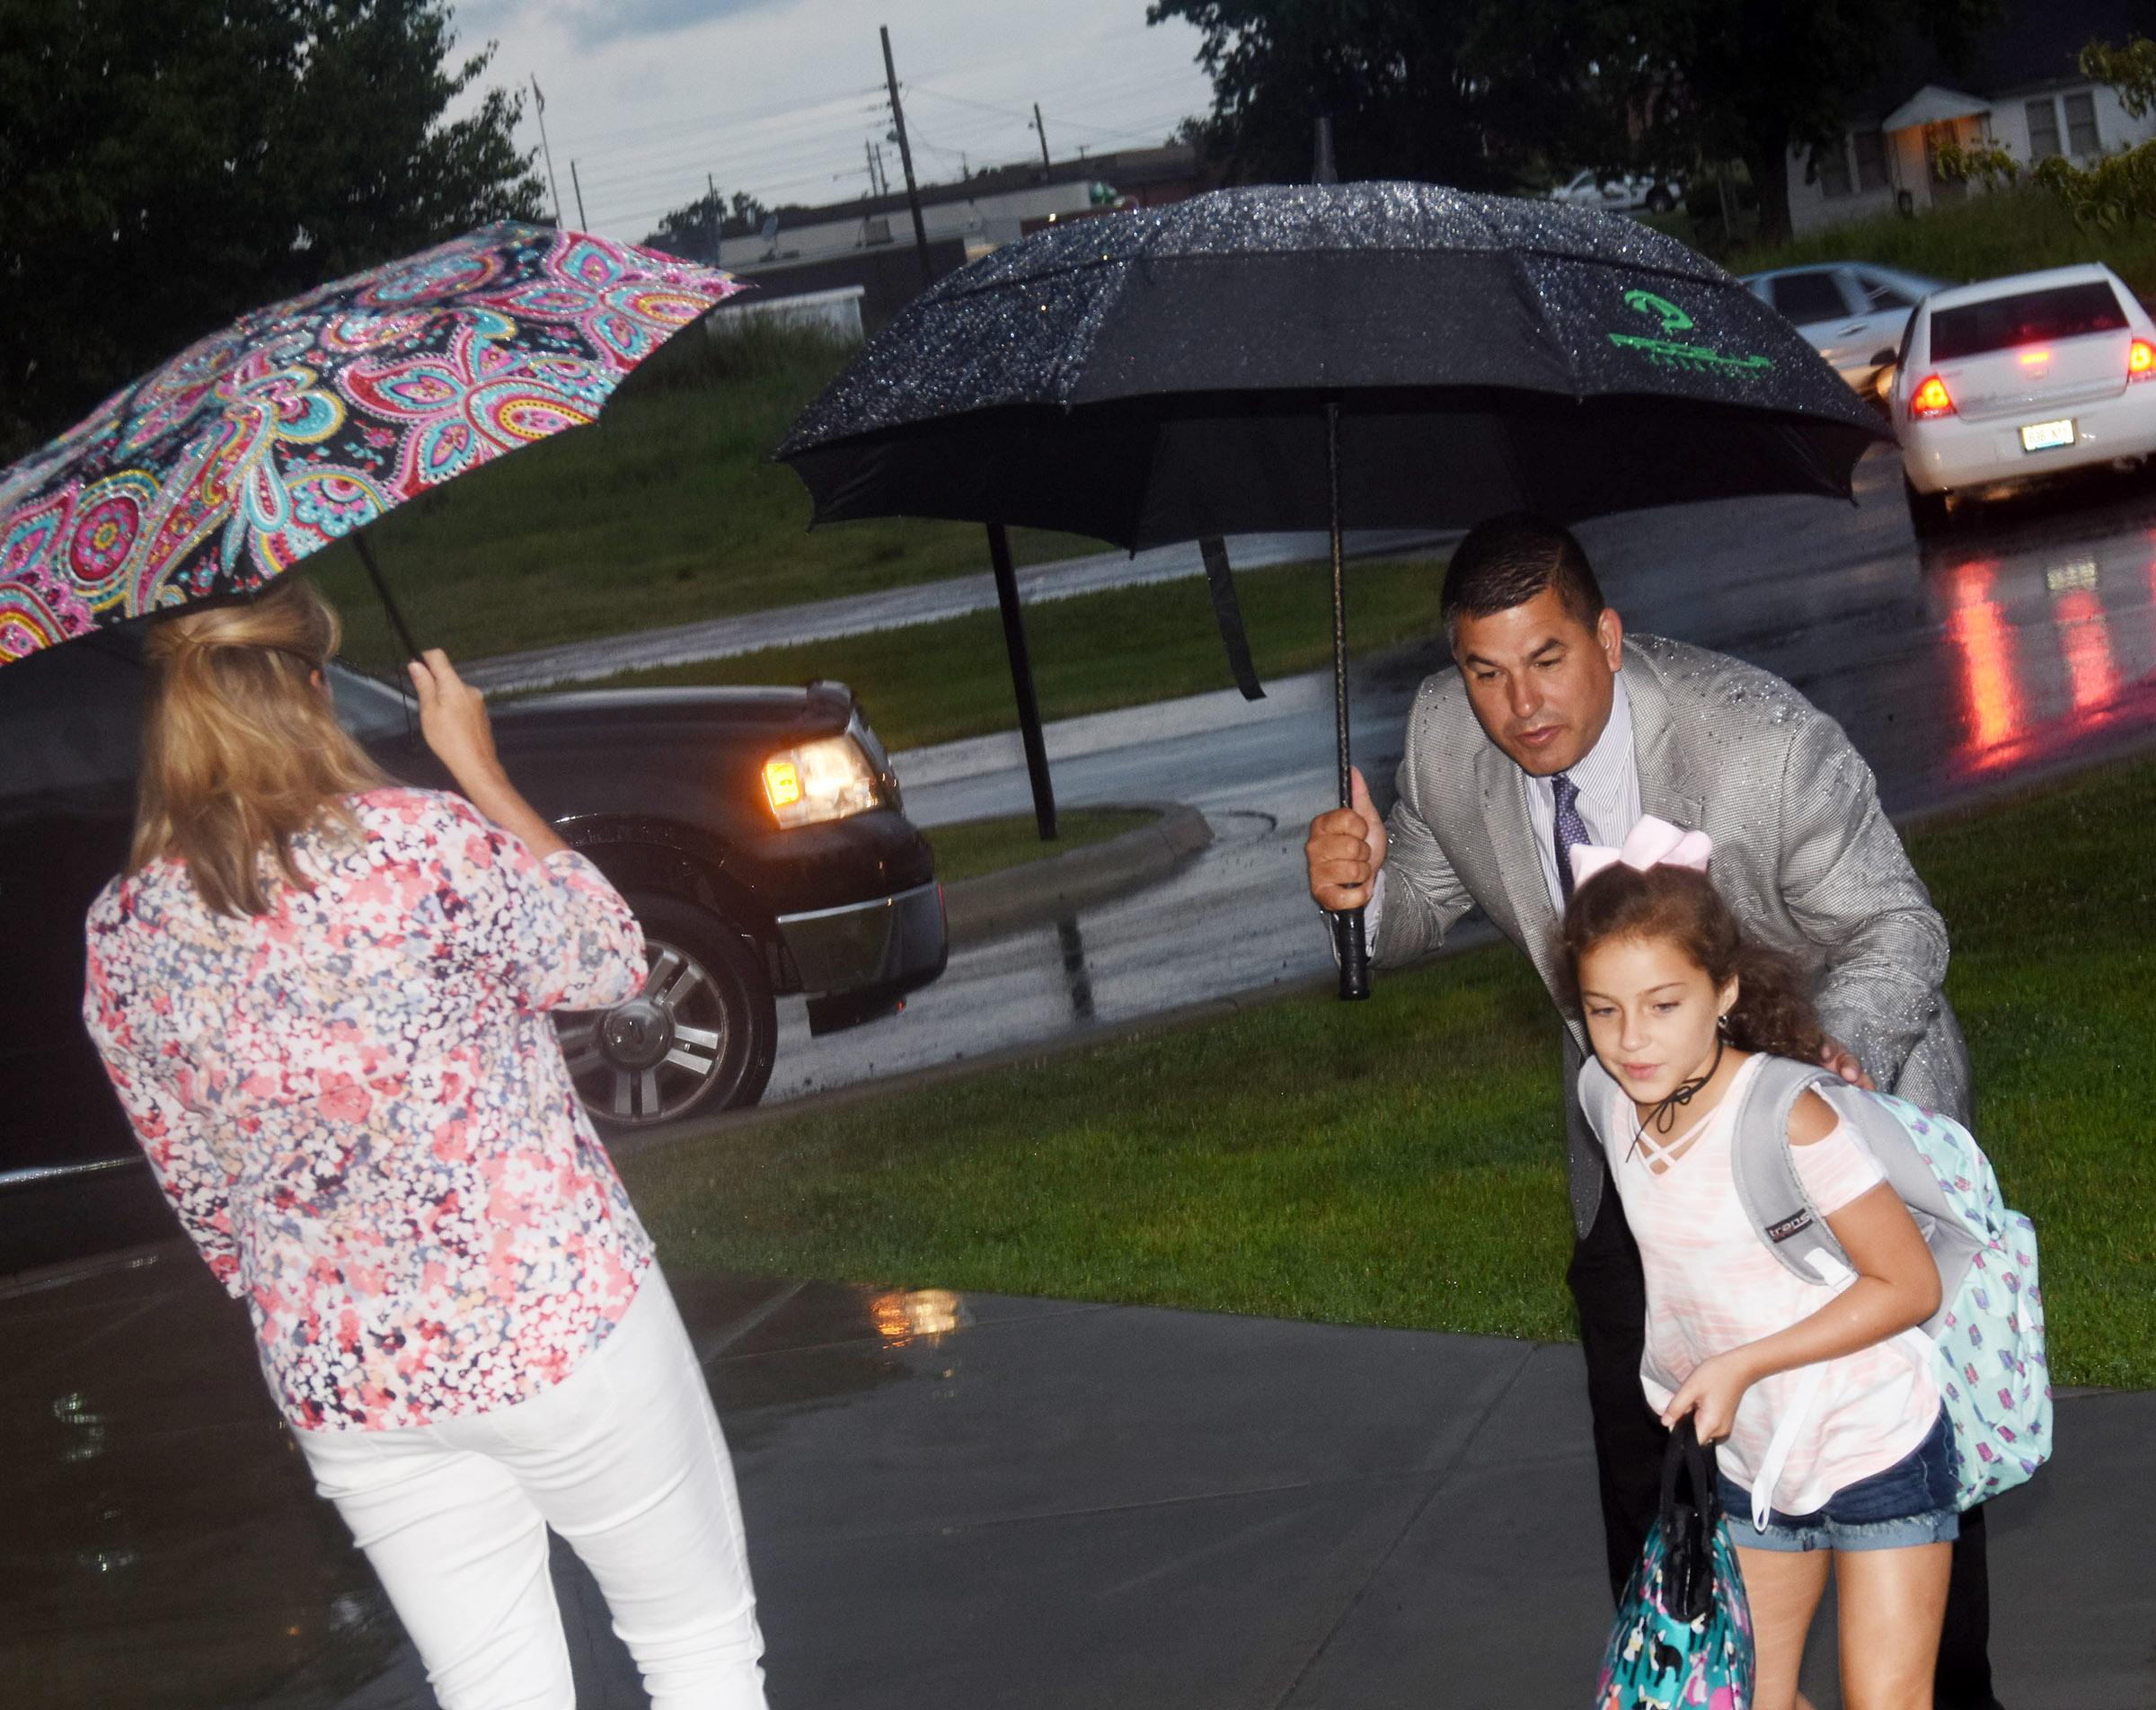 Campbellsville Independent Schools Superintendent Kirby Smith and his wife Andrea say goodbye to their daughter Karsyn as she begins her third-grade year at Campbellsville Elementary School.